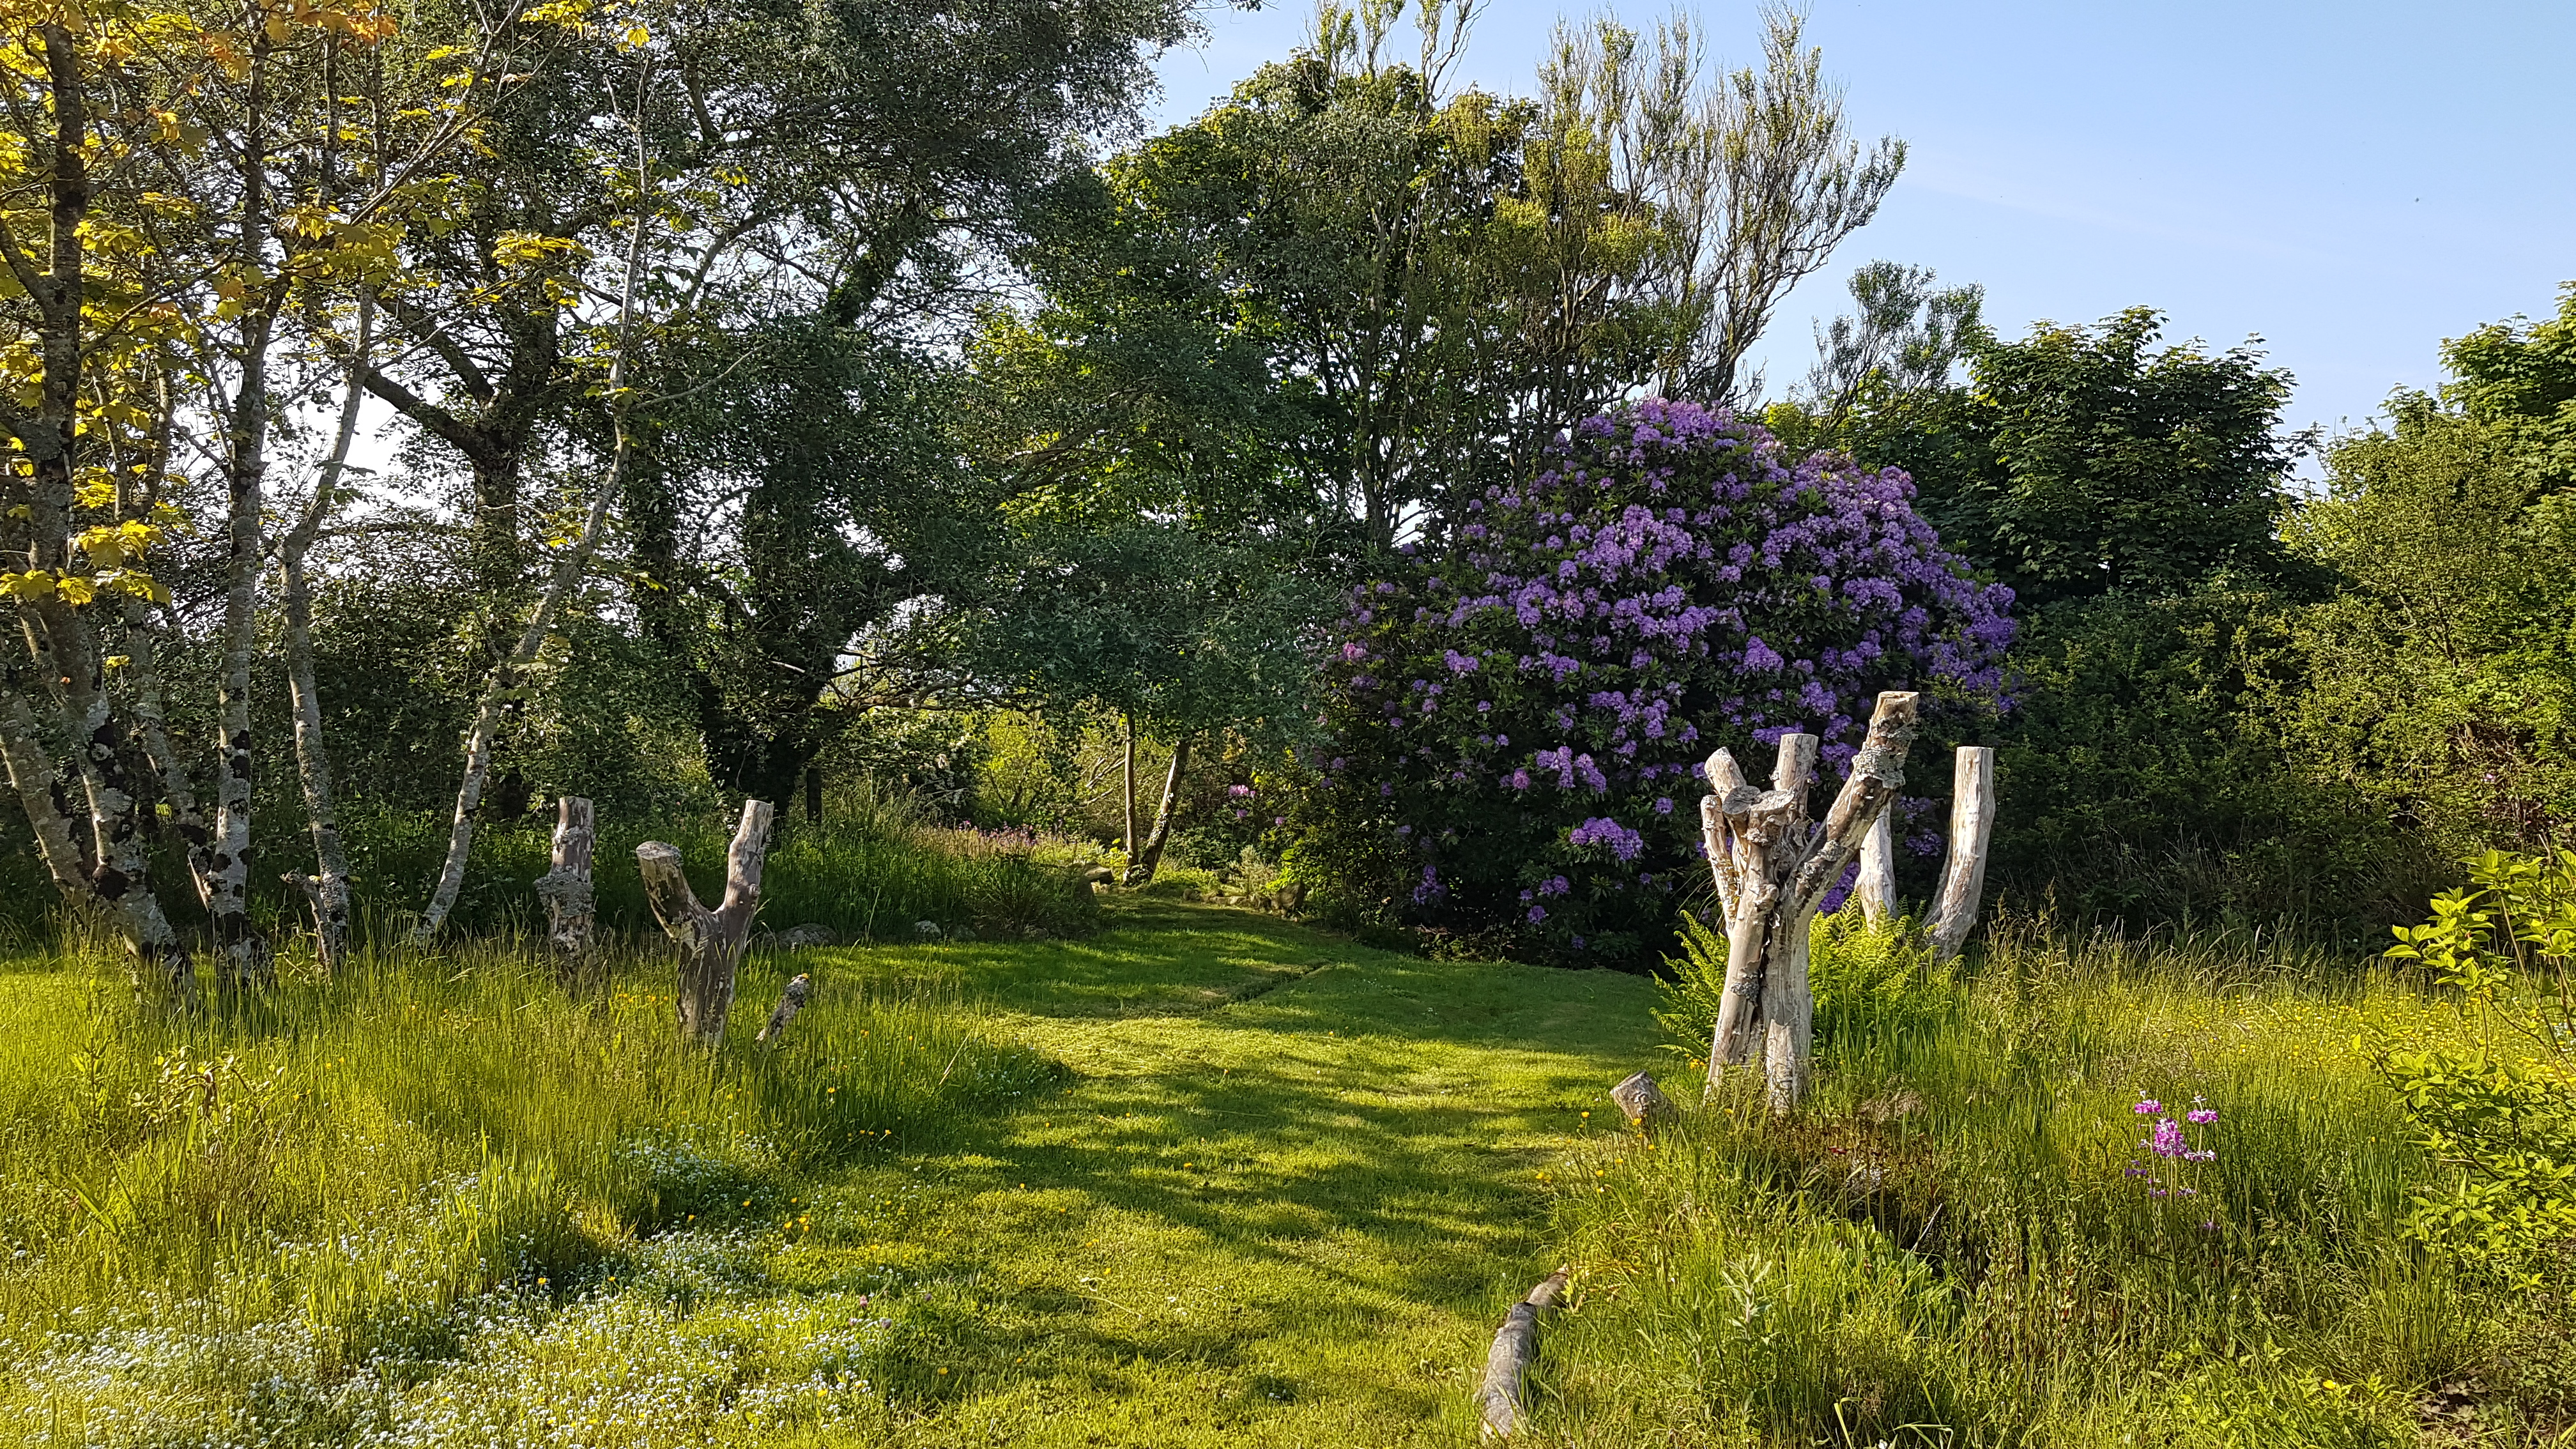 Yr Hafan landscaped garden and beautiful Azela in Spring